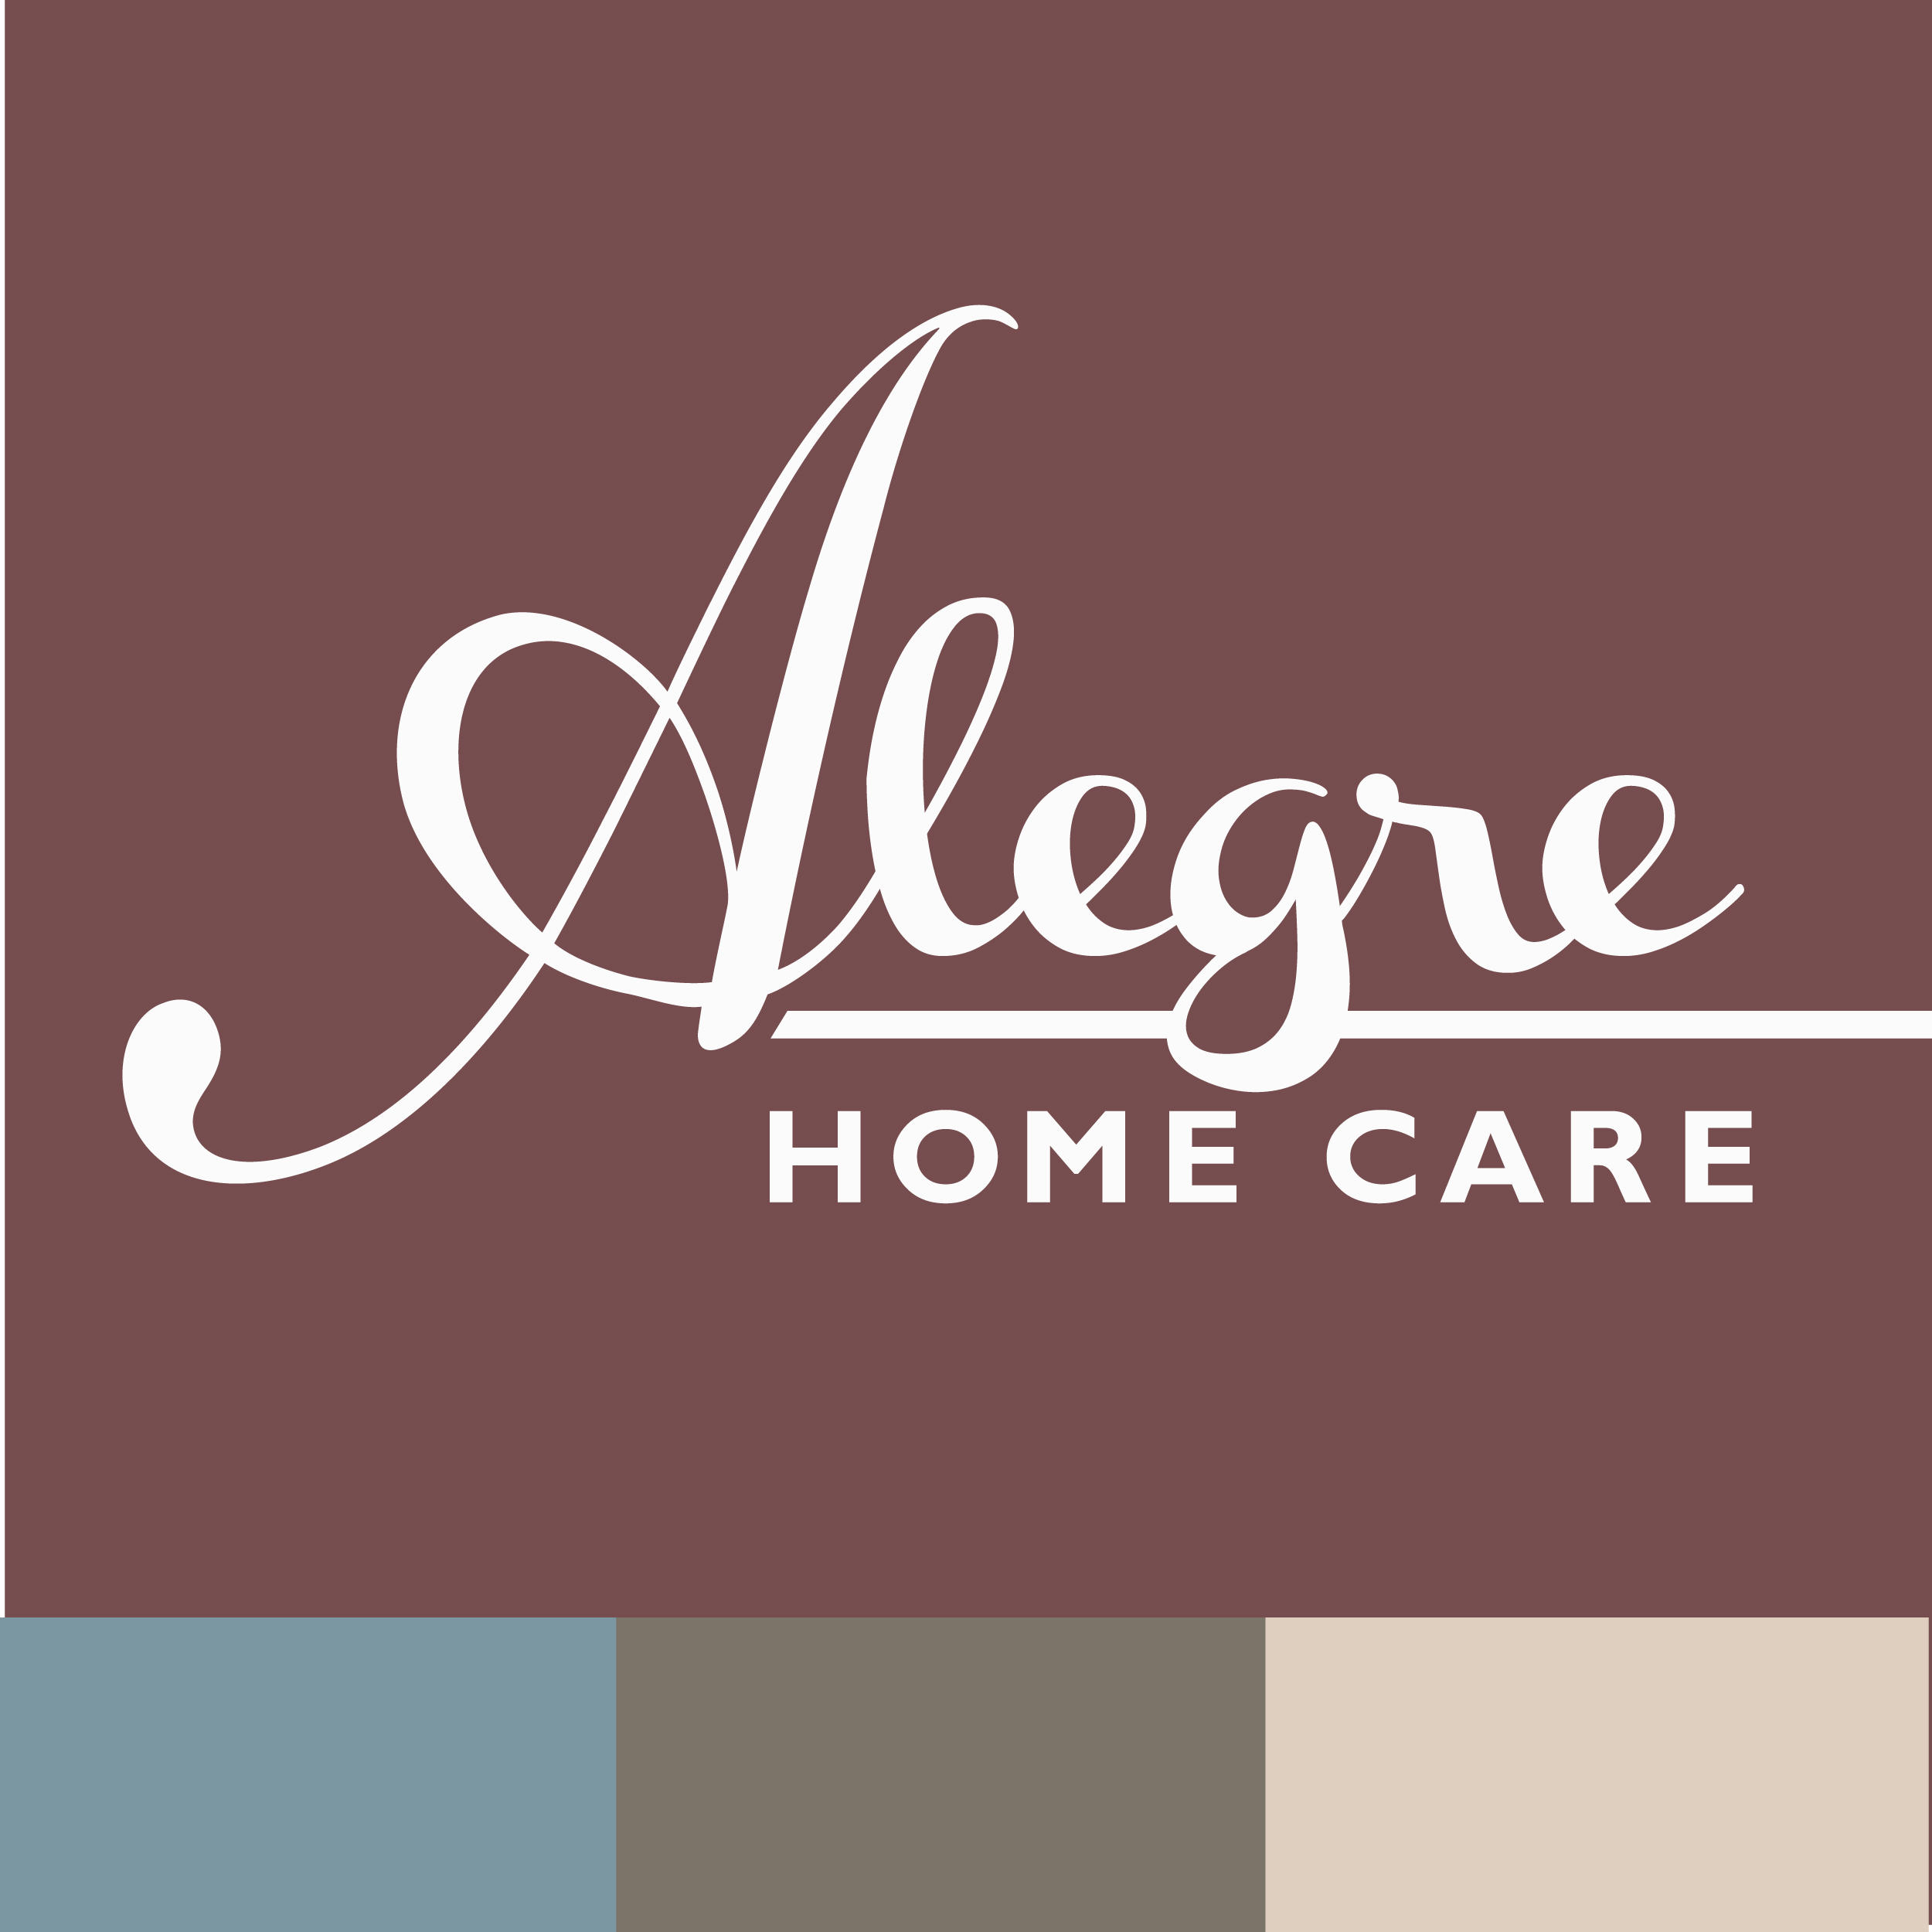 Alegre Home Care image 4